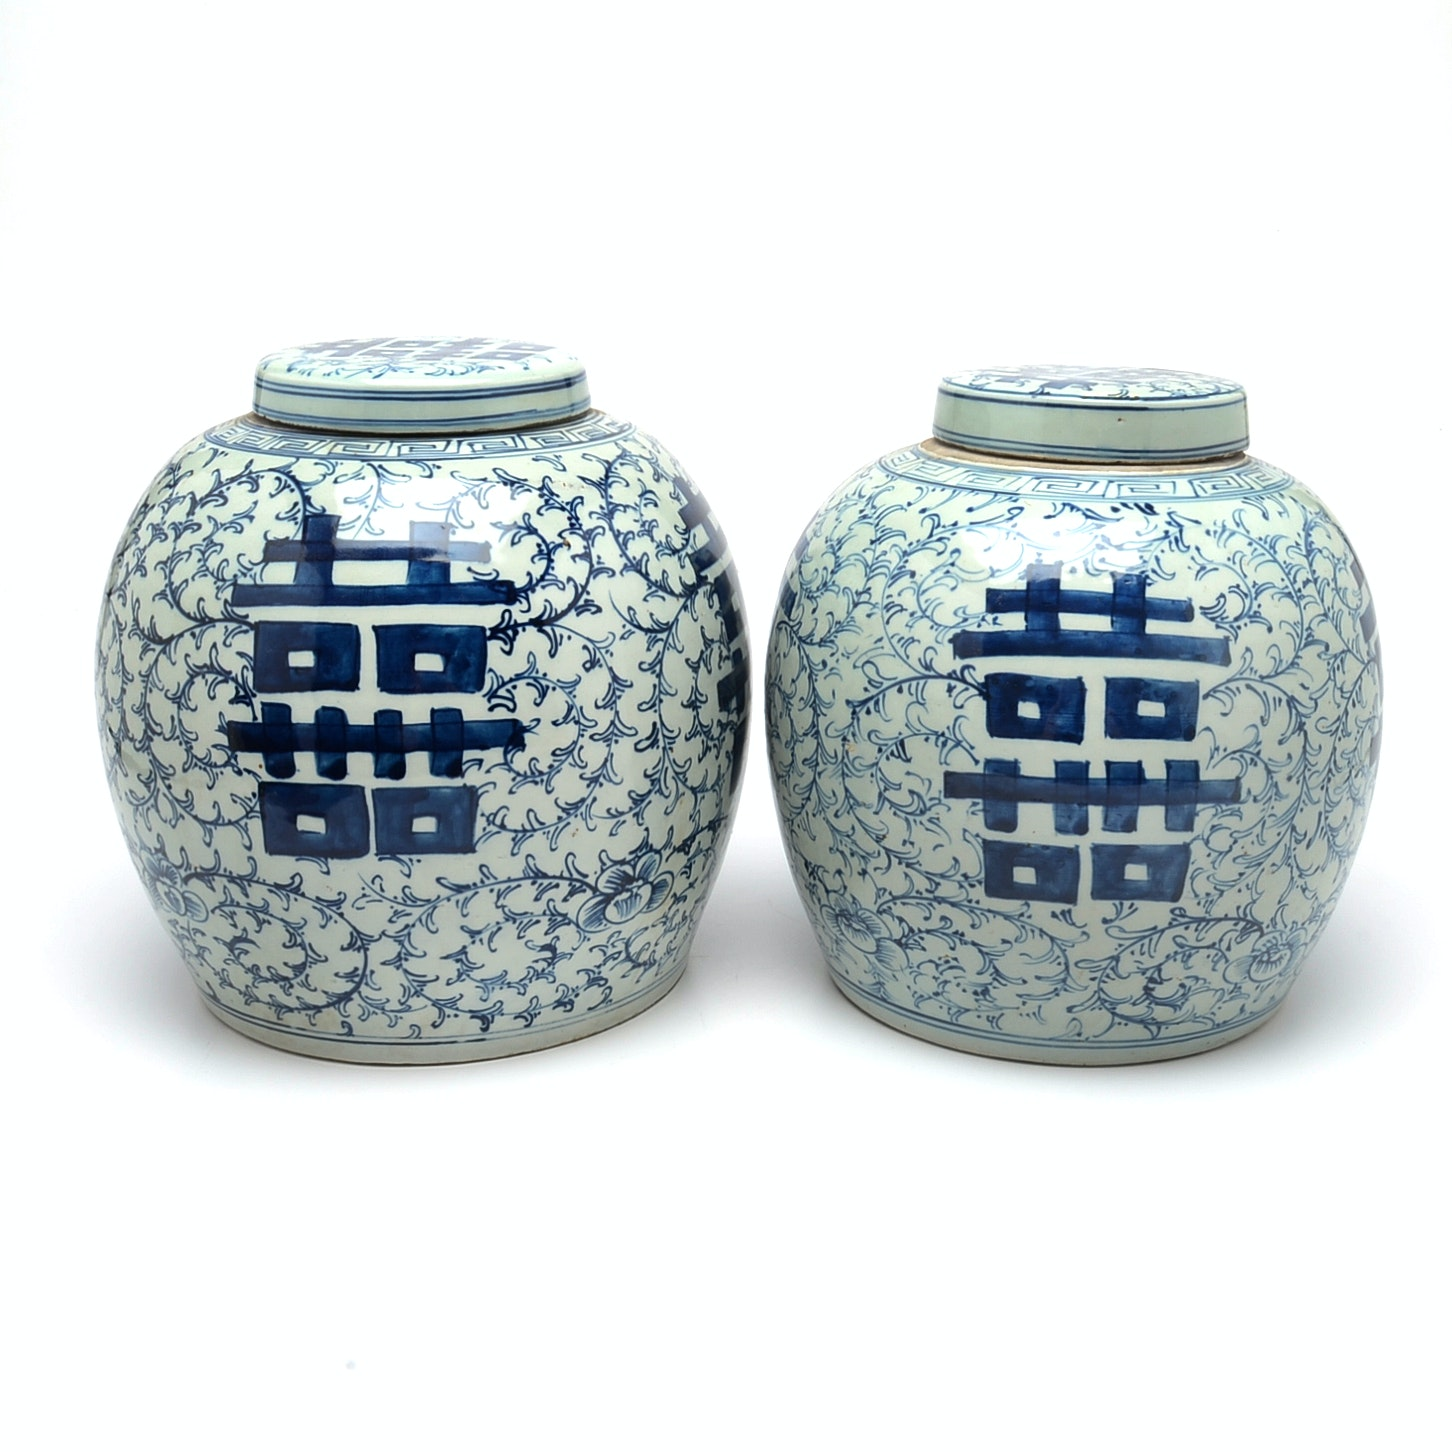 Pair of Chinese Ginger Jars